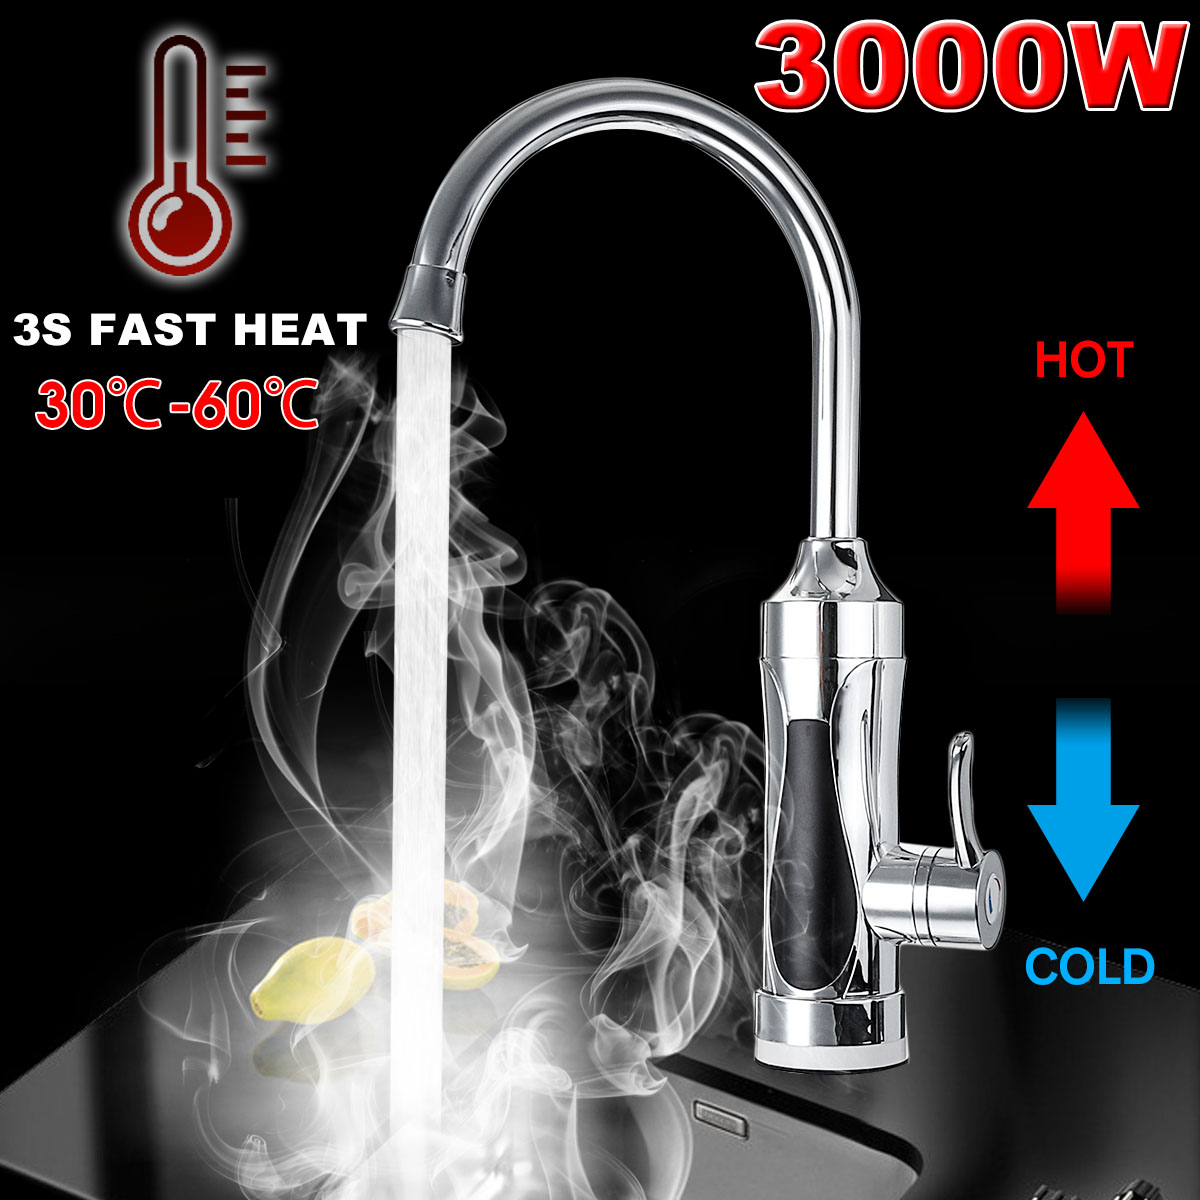 NEW 3000W 3S Instant Tankless Electric Hot Water Heater Faucet Kitchen Heating Tap Water Heater With Temperature Digital Display